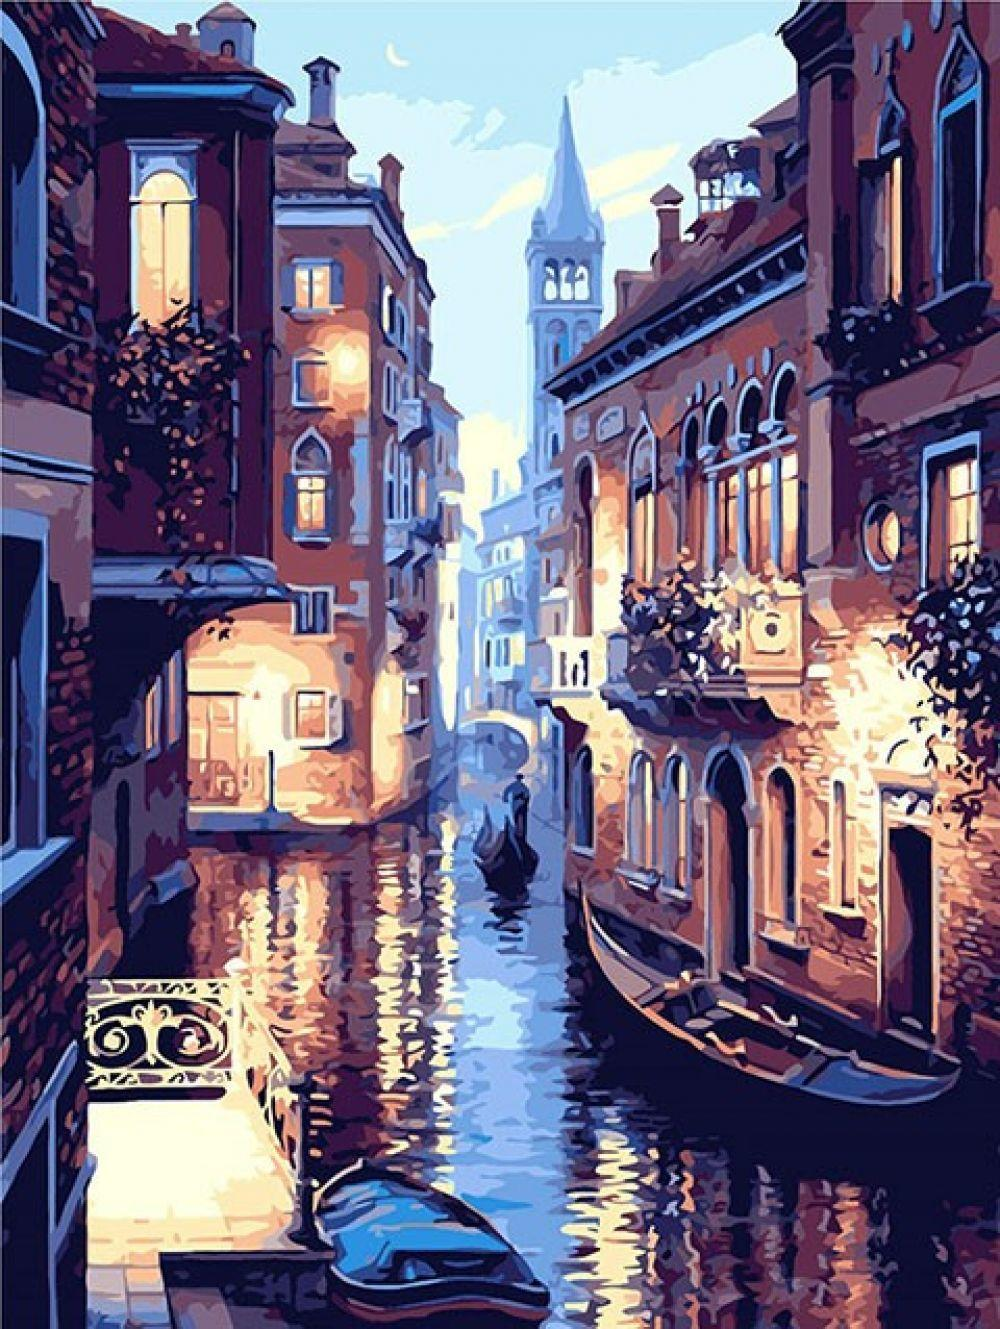 Frameless Venice Night Landscape DIY Digital Oil Painting By Numbers Europe Abstract Canvas Painting For Living Room Wall Art